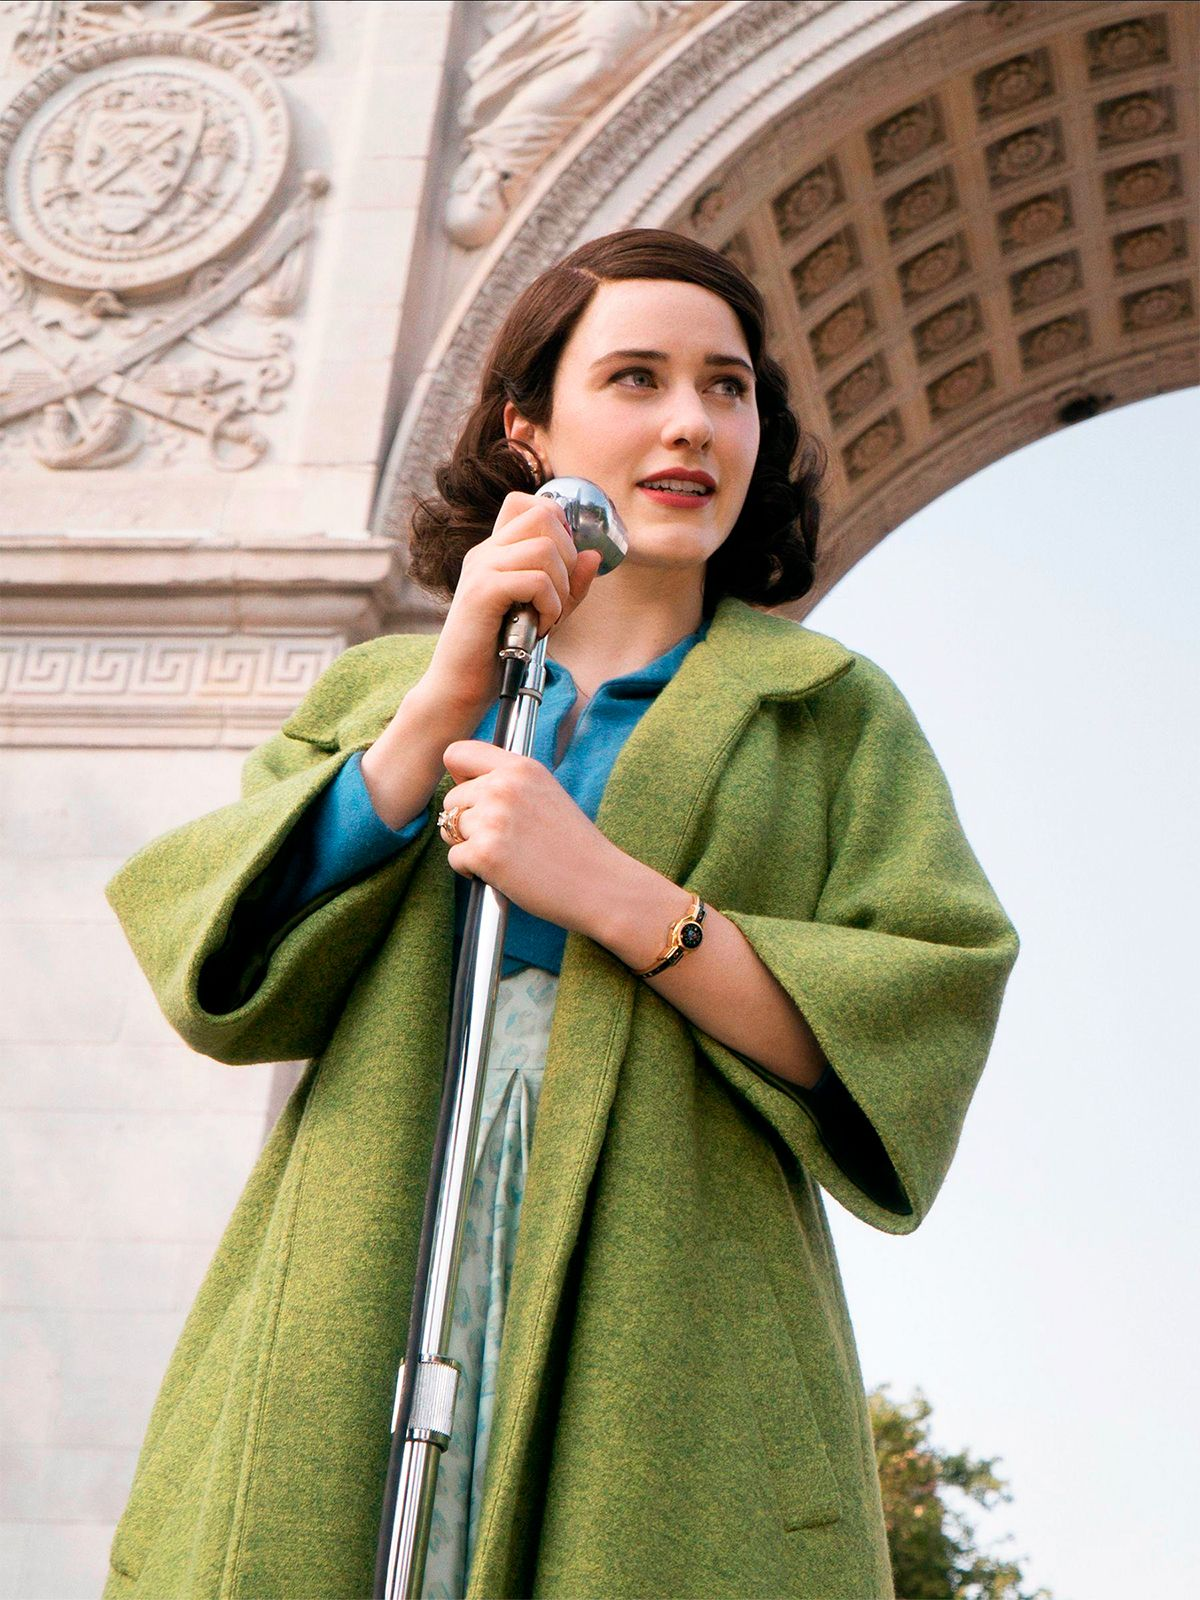 What You Need To Know About 'Marvelous Mrs. Maisel' Season 3